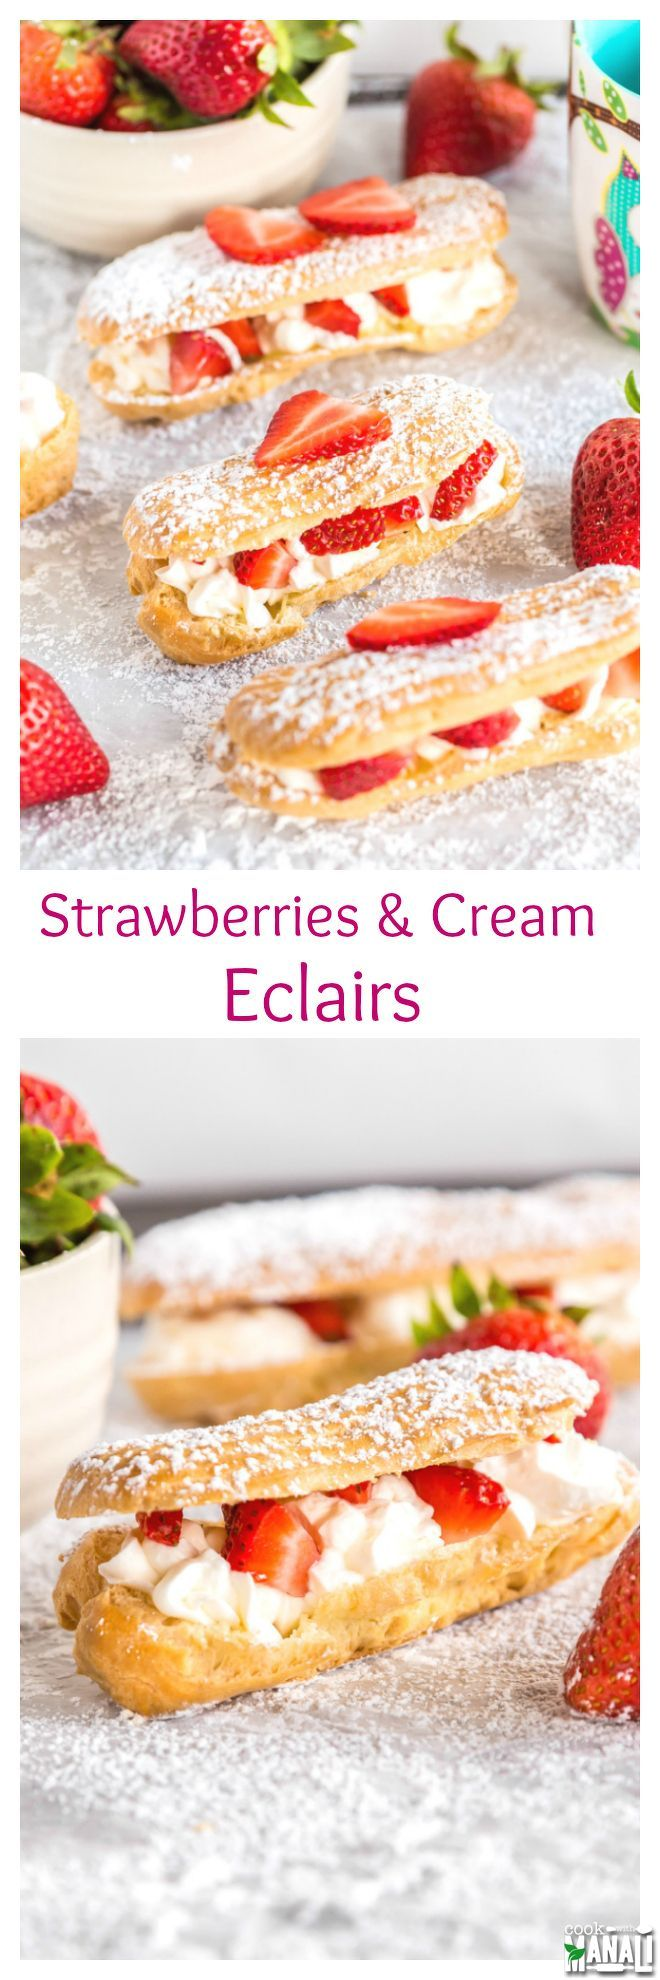 Homemade eclairs filled with whipped cream and fresh strawberries! These eclairs are lightly sweetened and the perfect dessert to enjoy this summer! Find the recipe on www.cookwithmanal...